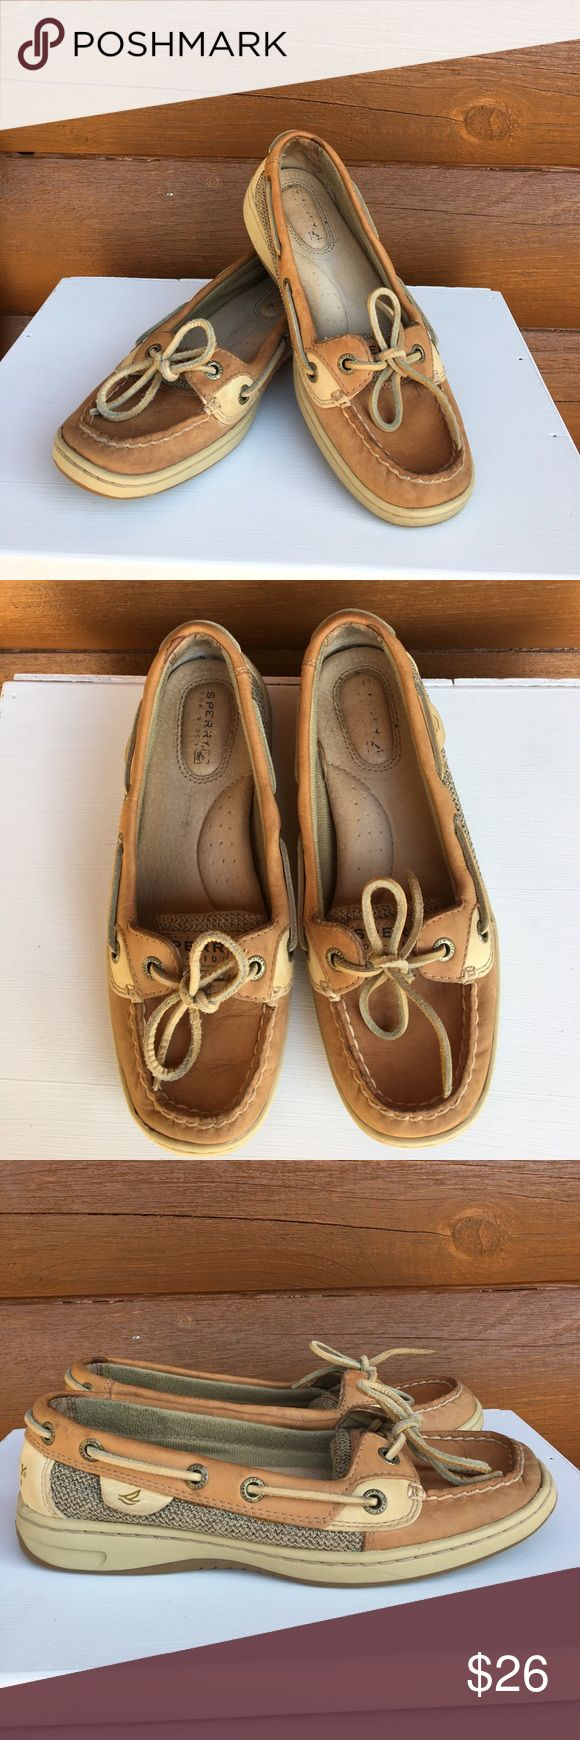 Sperry boat shoes Tan leather boat shoes in great used condition 👟 Sperry Top-Sider Shoes Sneakers